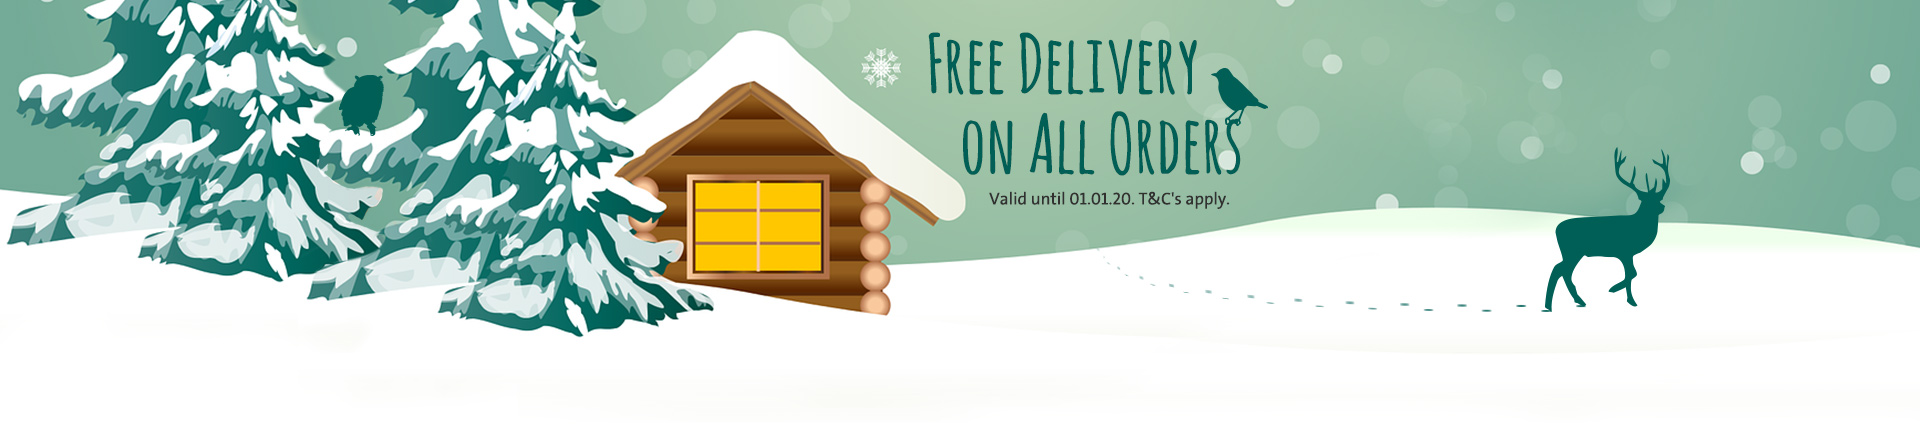 Free Delivery Winter